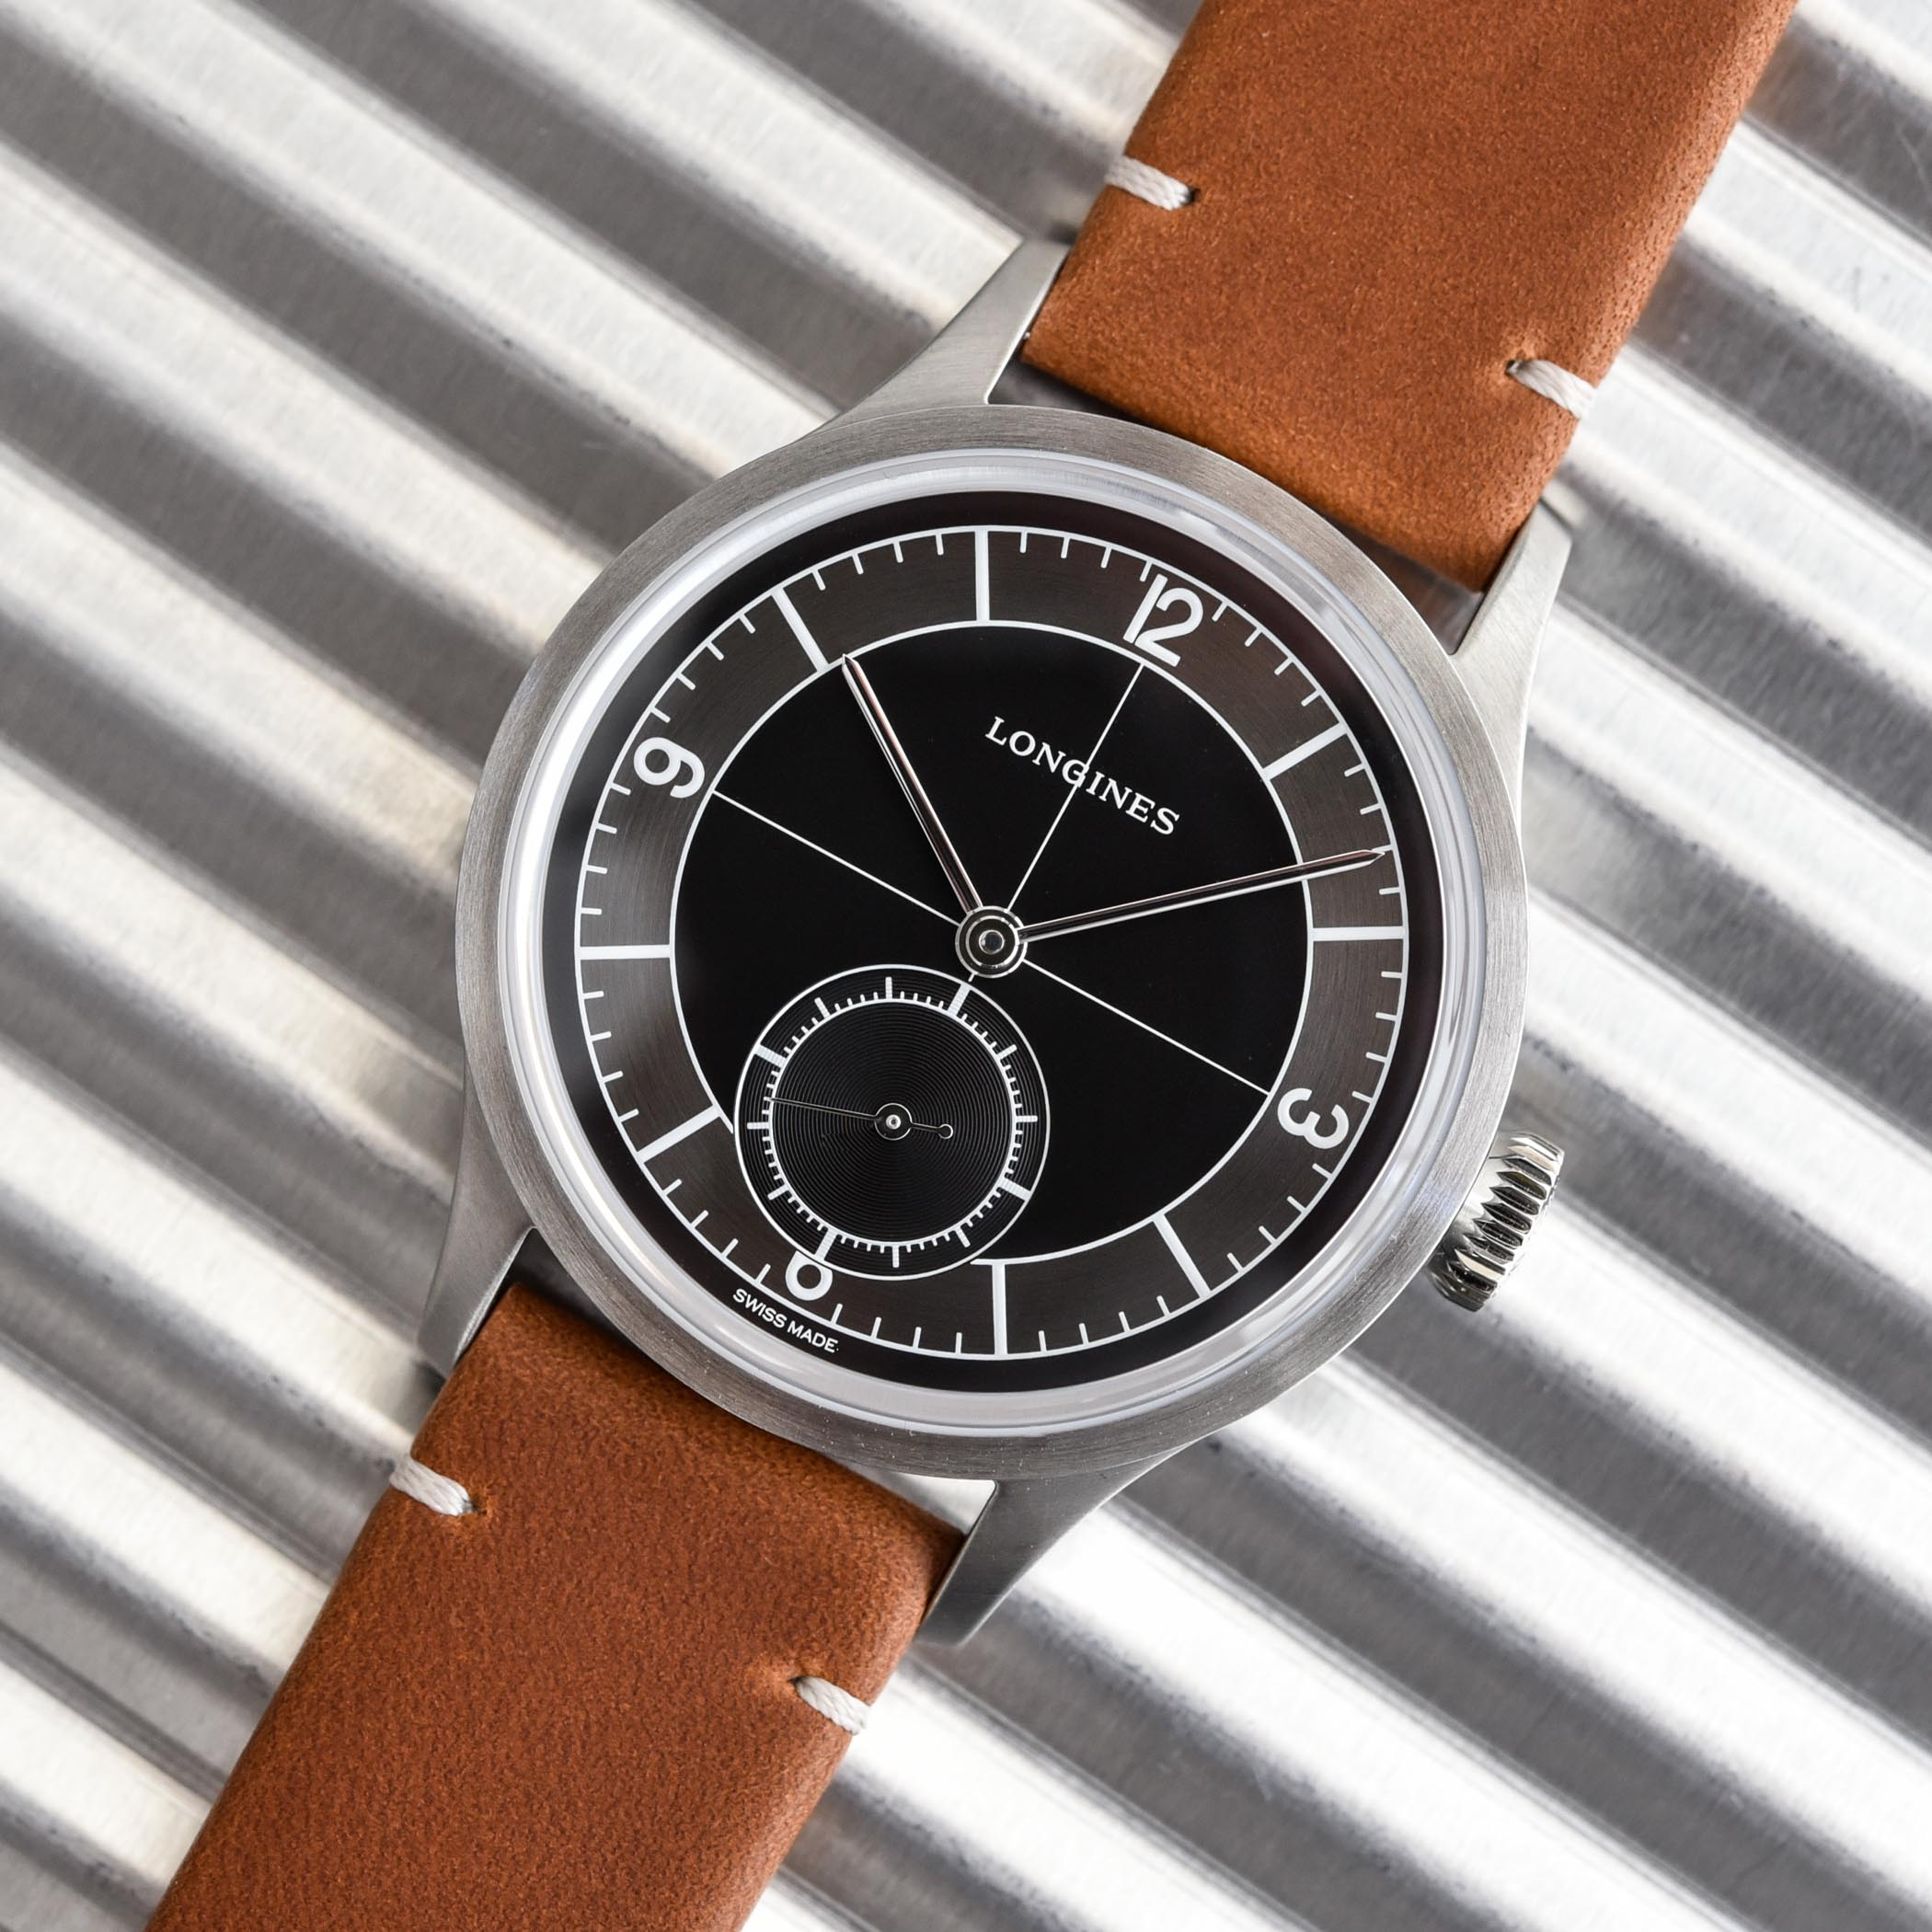 Longines Heritage Classic Sector Dial Black L2.828.4.53.6 - hands-on review - 4